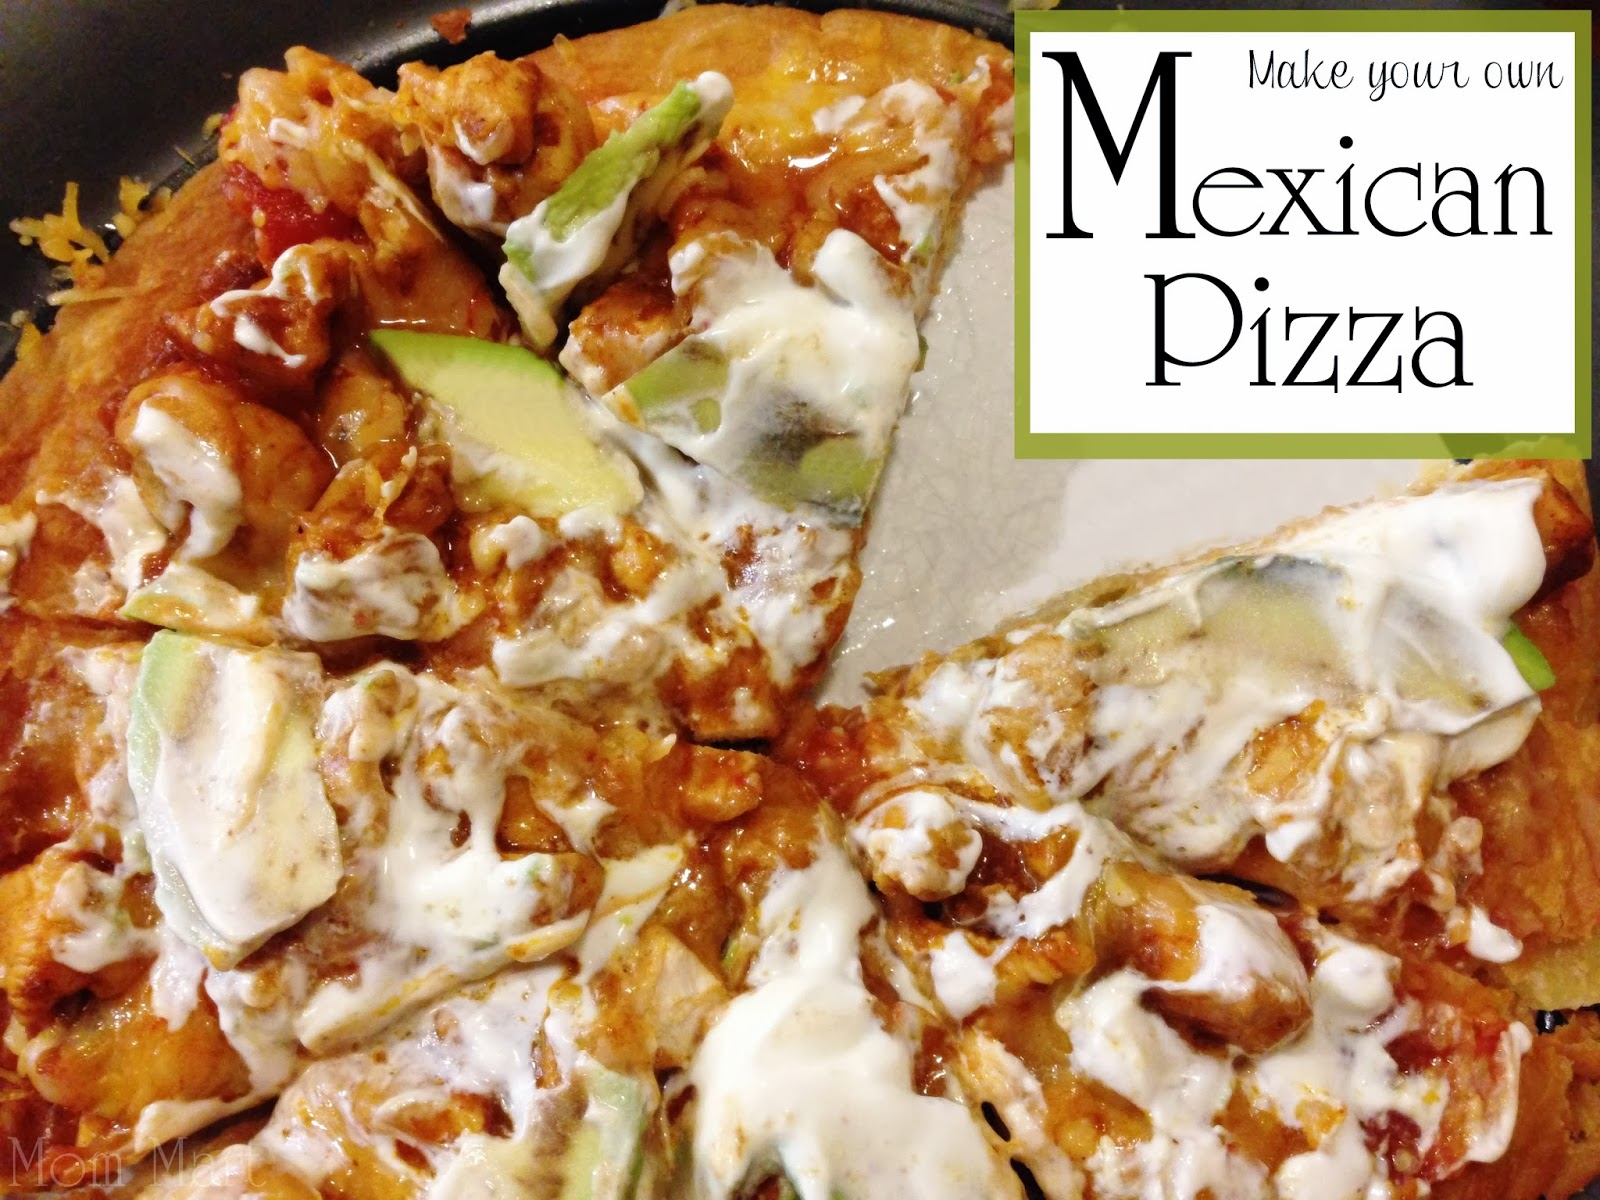 Mexican Pizza Recipe Super Simple Dinner that everyone can customize #Recipe #WhatsForDinner #YUM